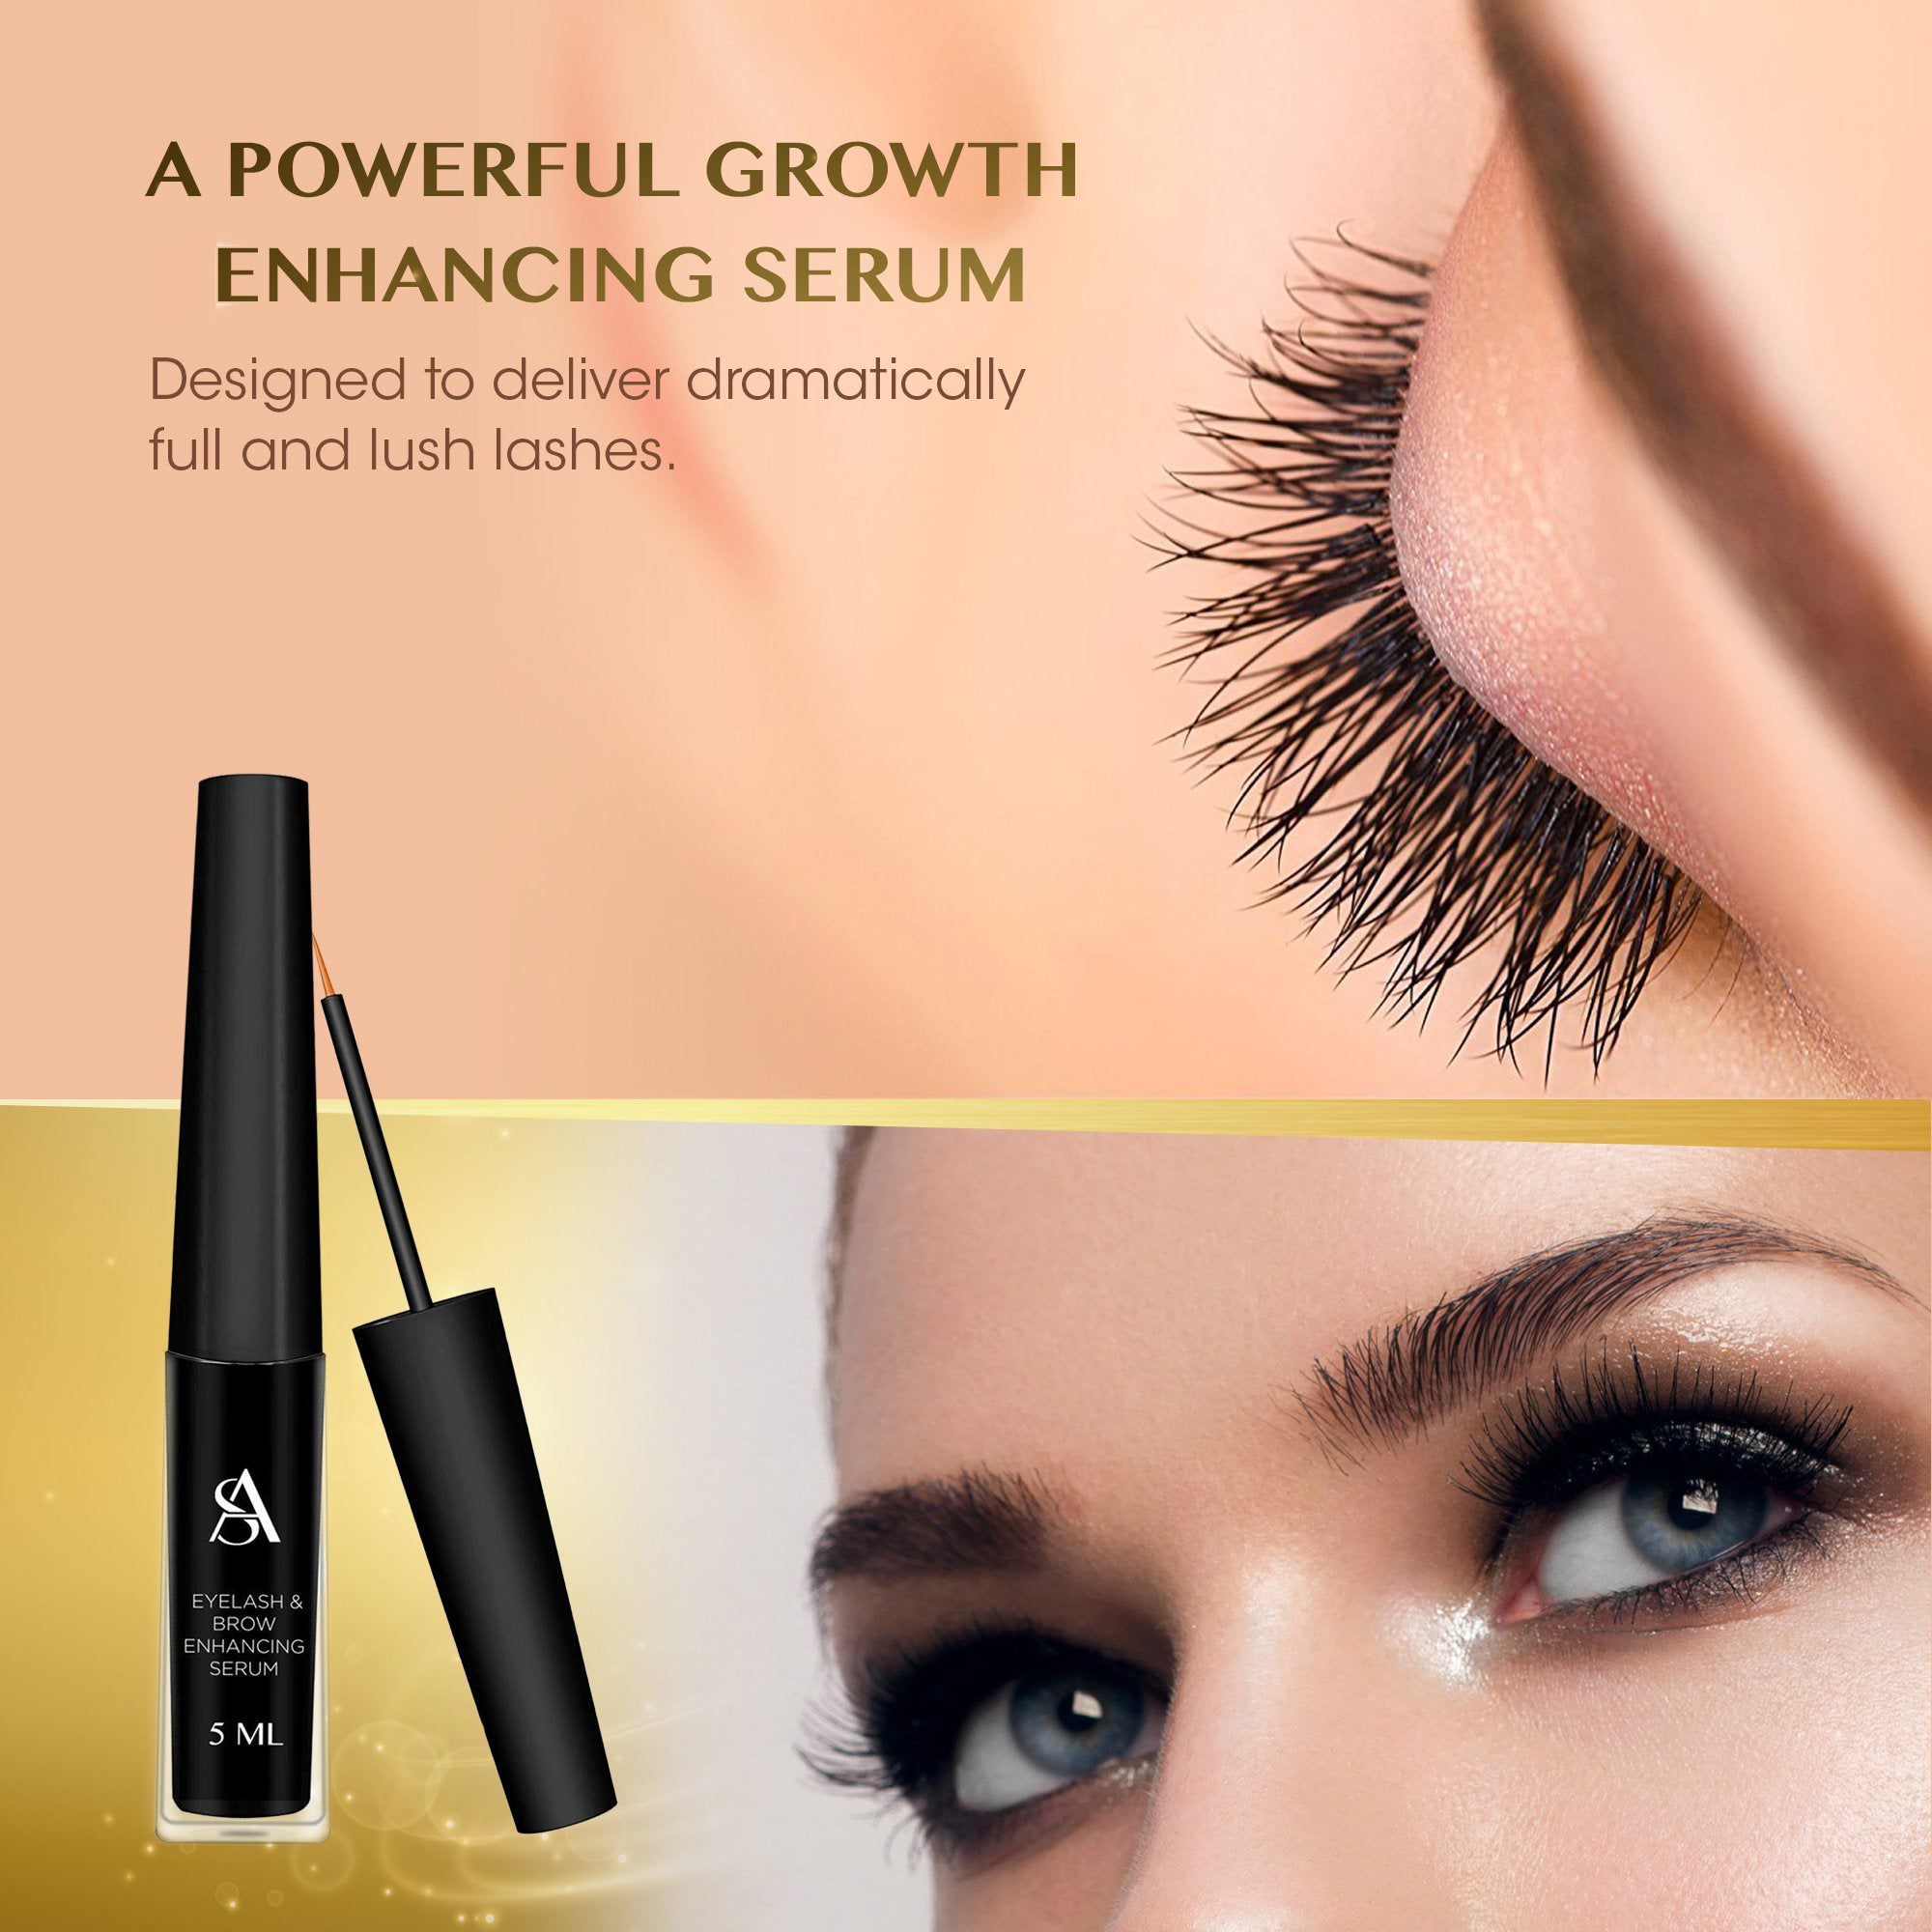 Arishine Professional Eyelash & Brow Enhancing Serum Online